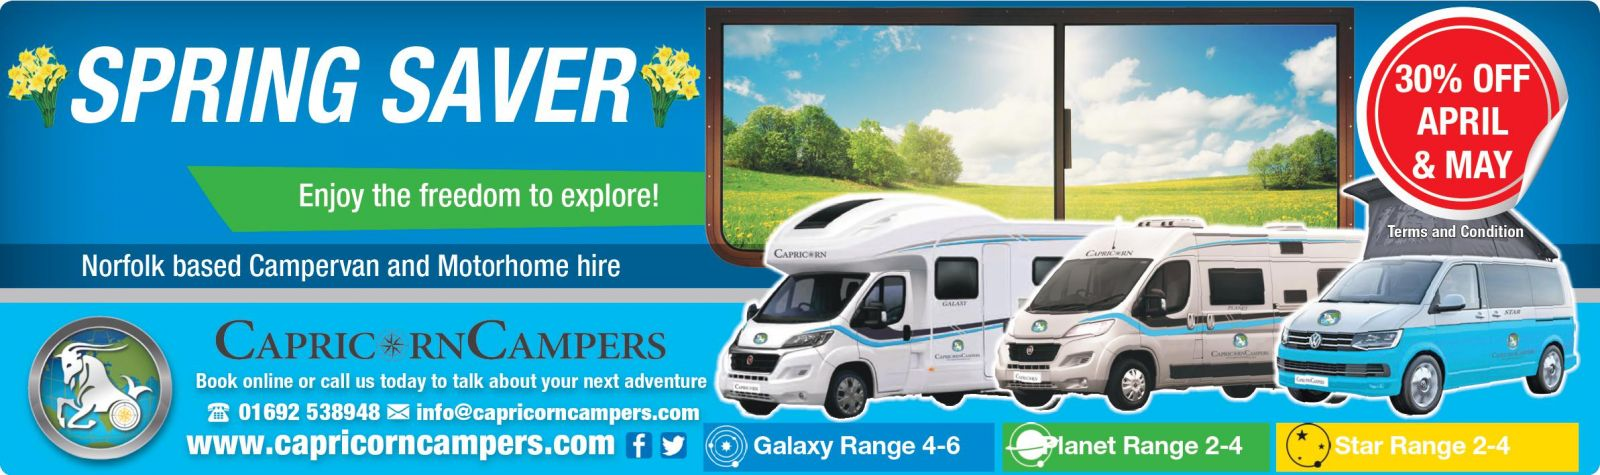 Advert offering discount off motorhome hire